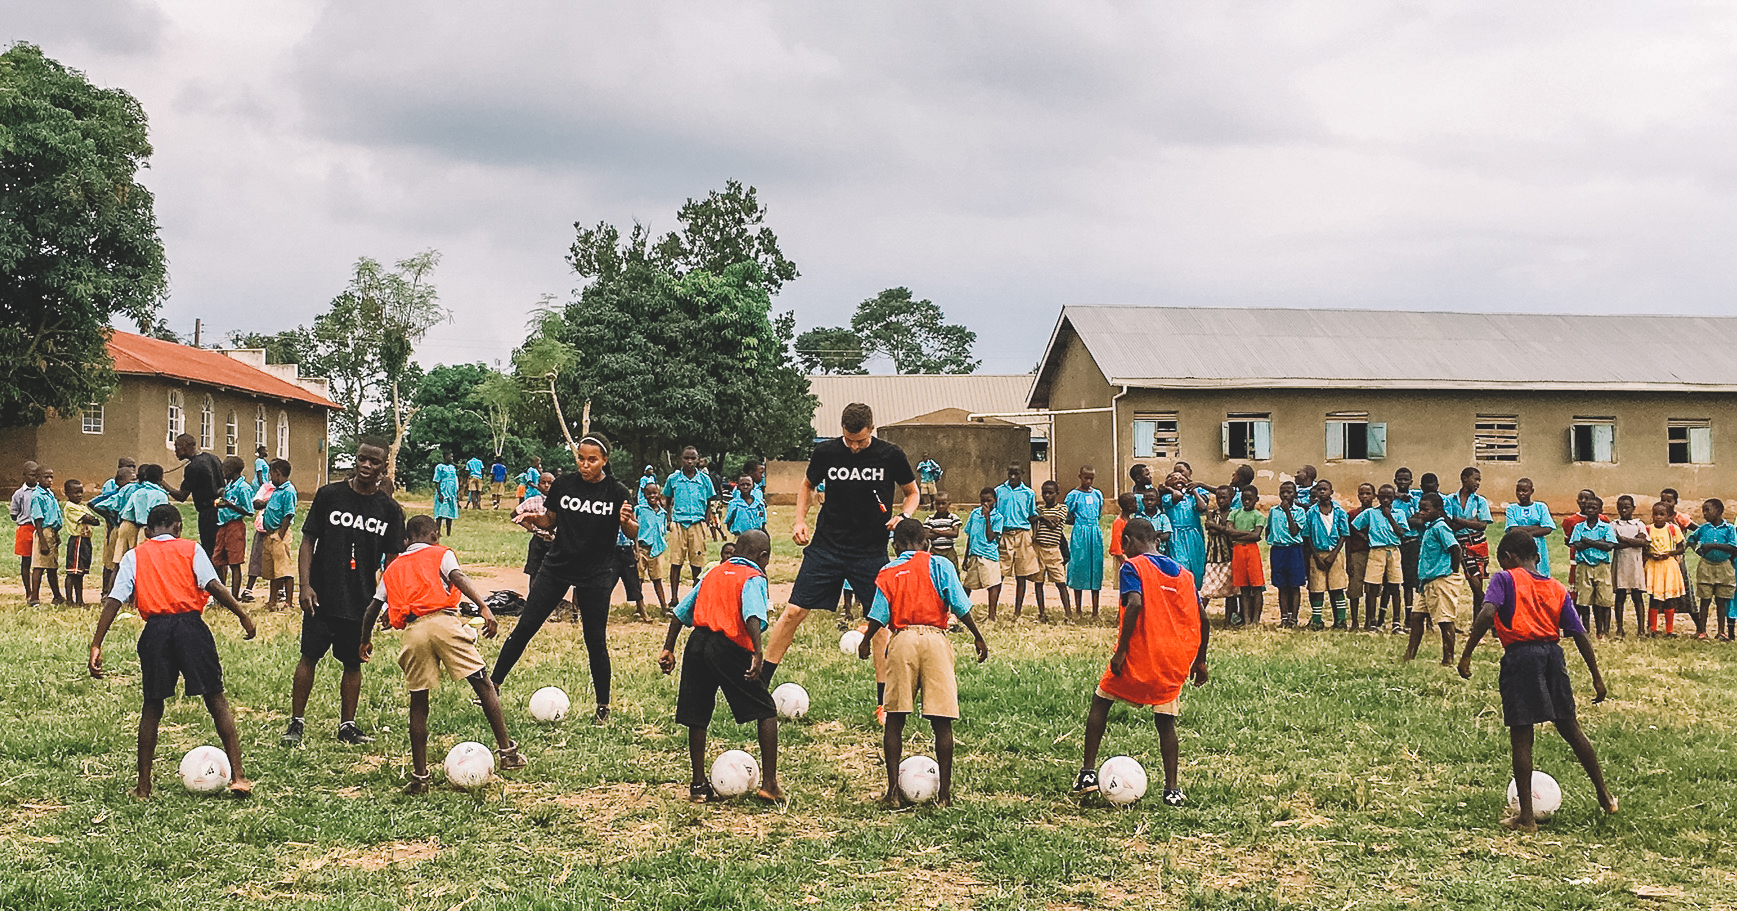 G.O.D. teams facilitated the first formal football league for St. John's children and a variety of teacher training seminars this summer.